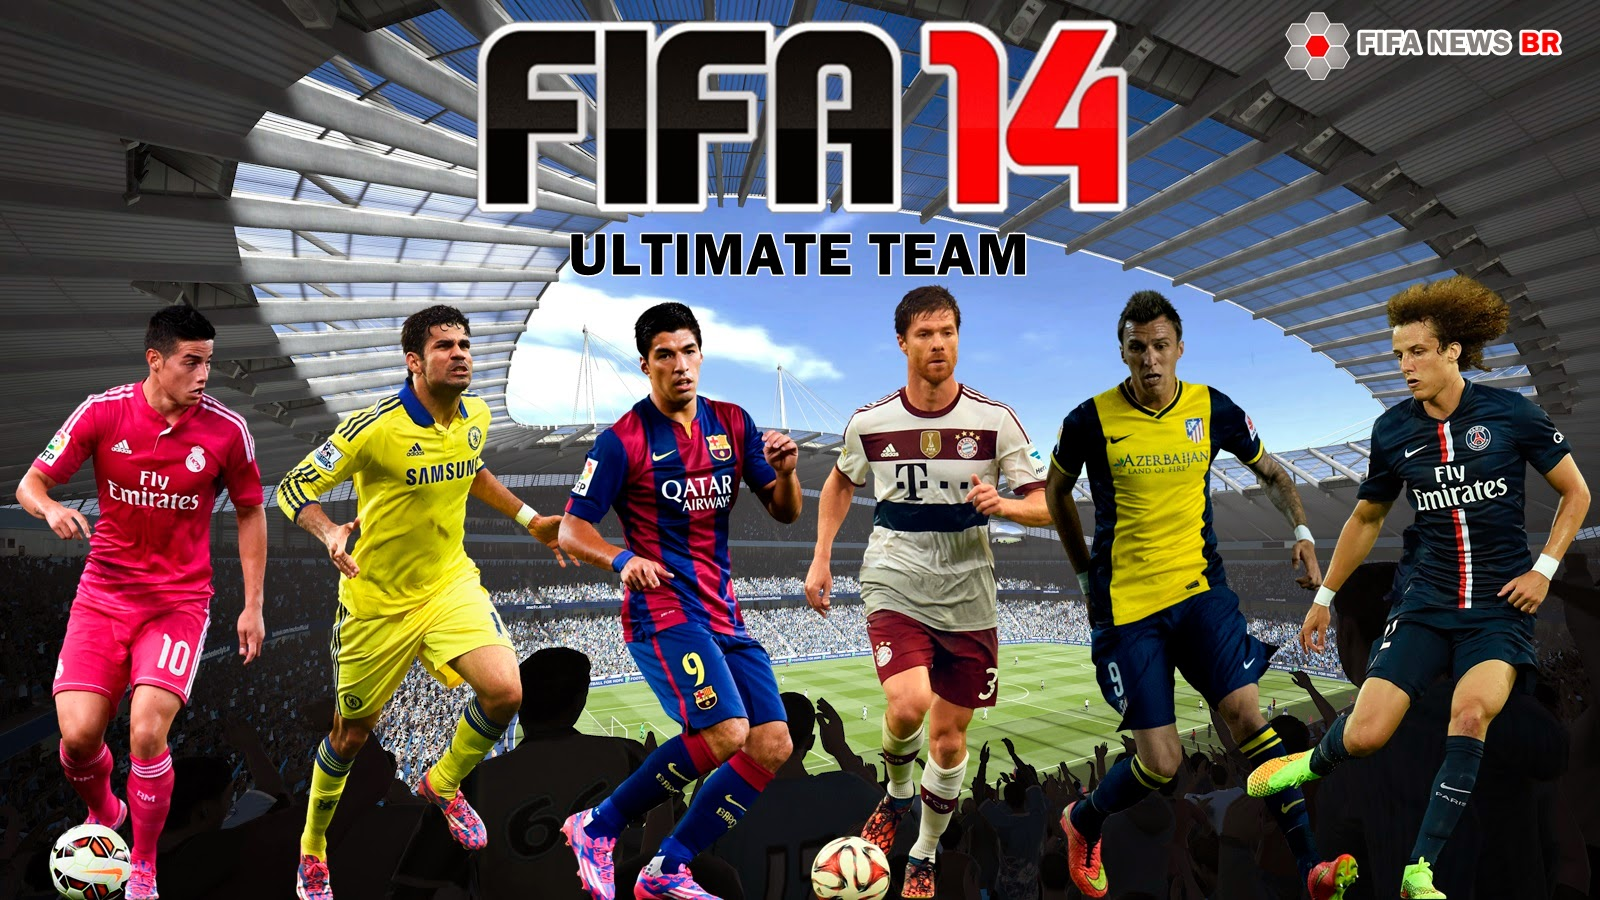 Jogadores do Ultimate Team Fifa 14